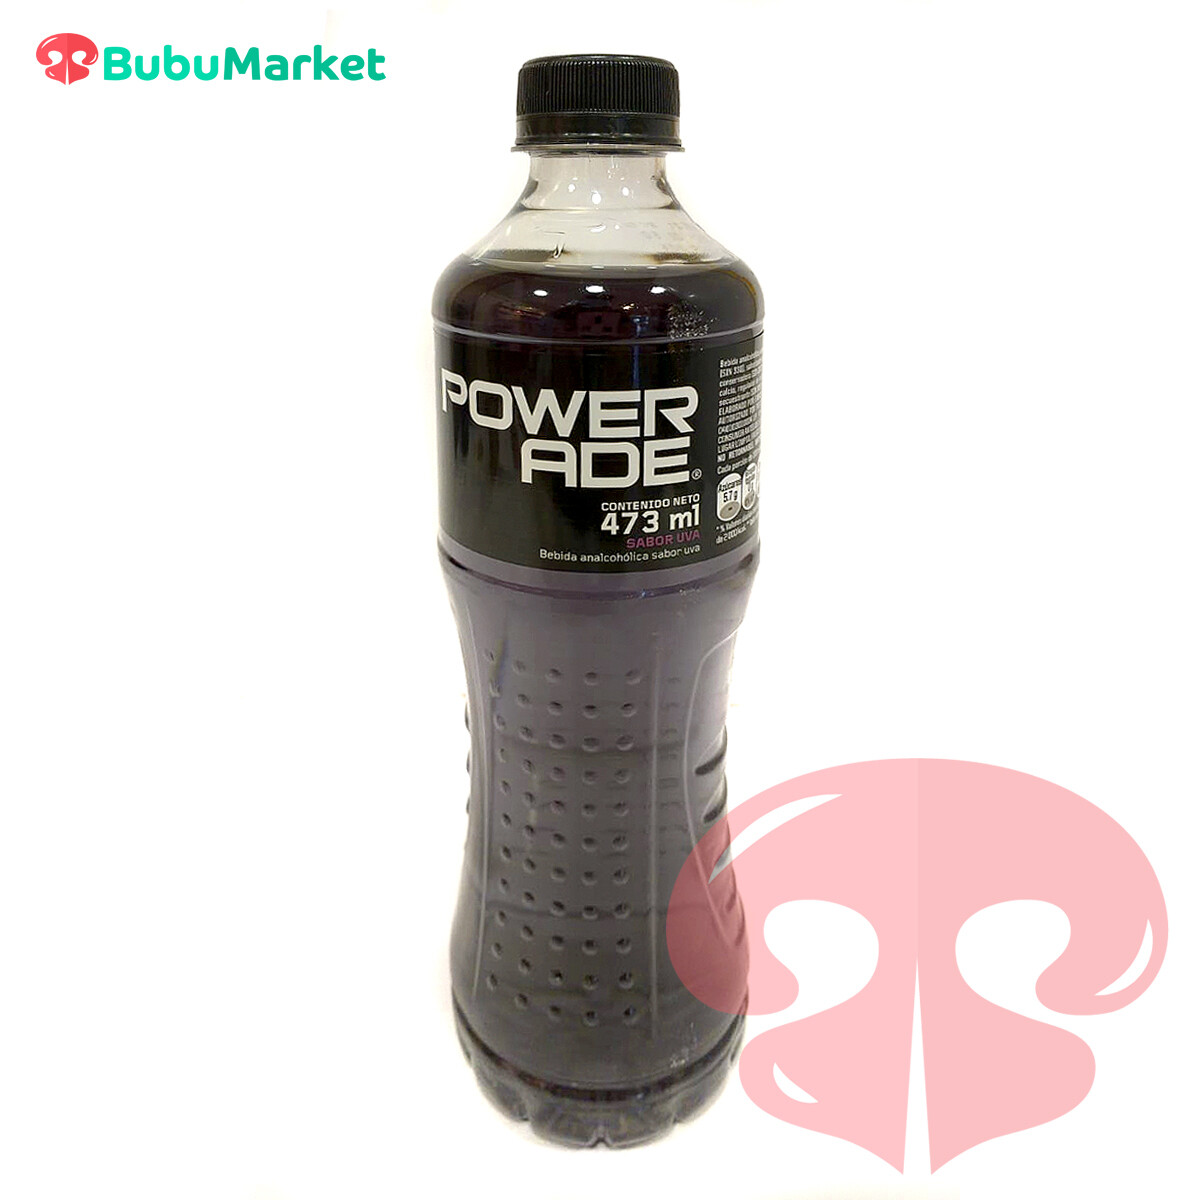 POWERADE UVA AZUL BOTELLA DE 473 ML.